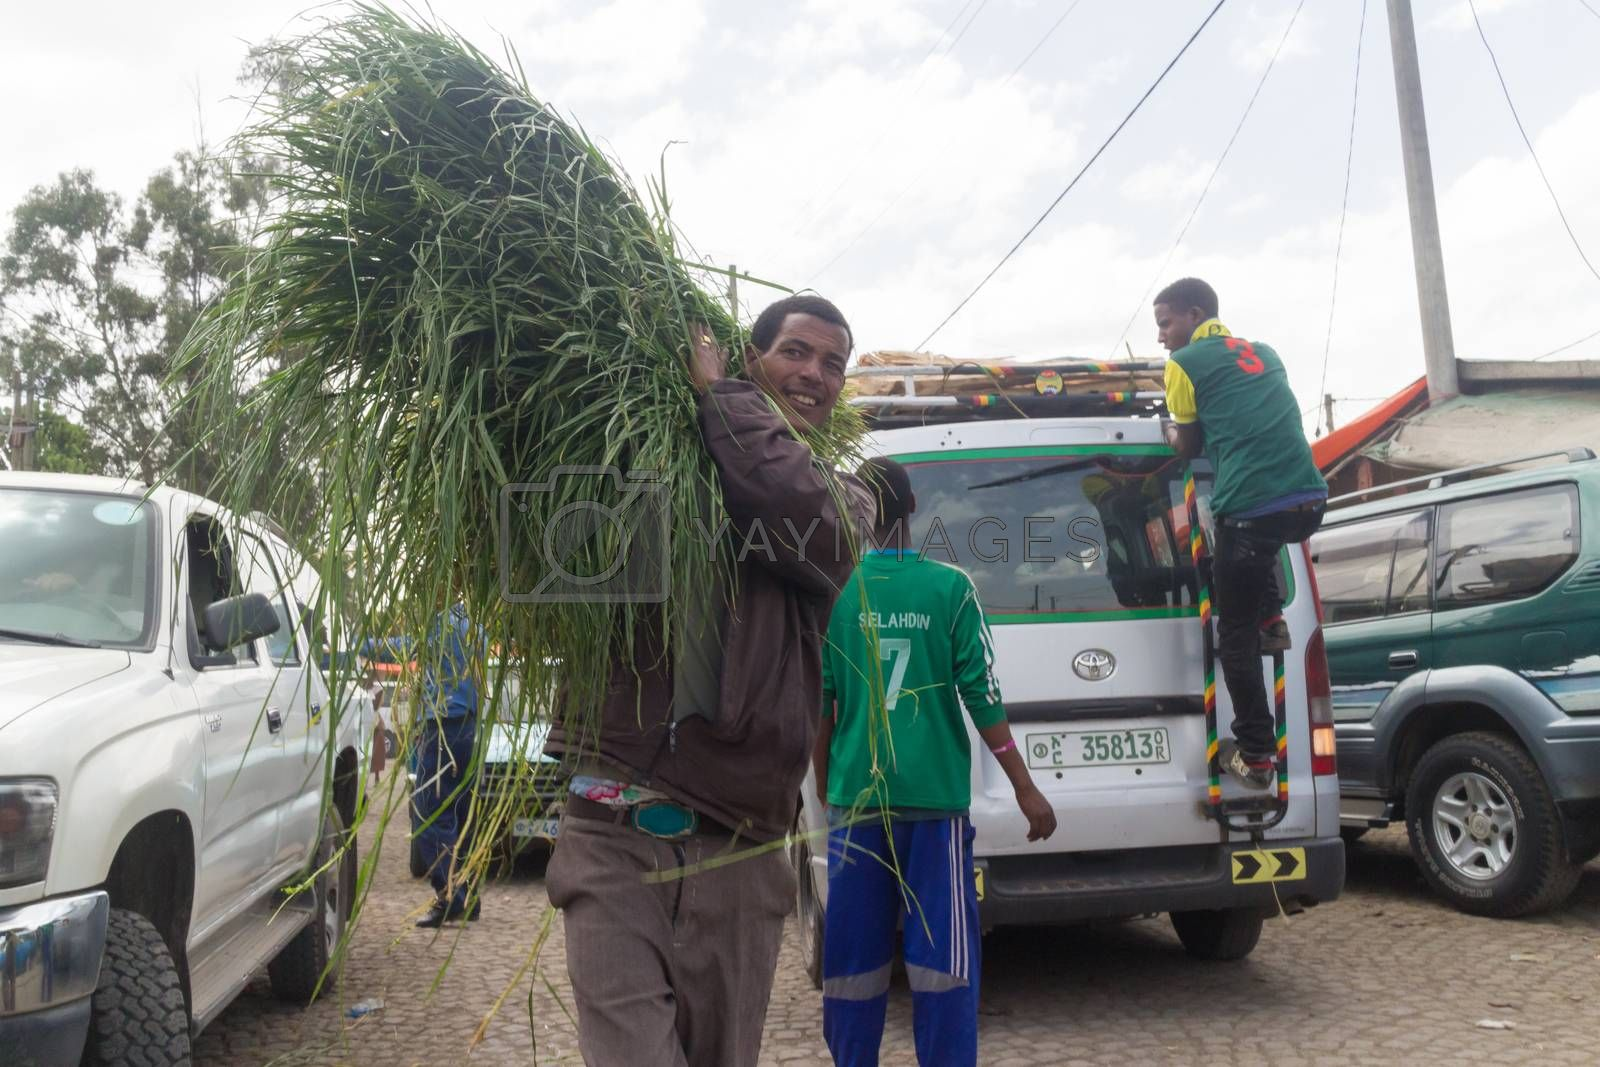 Addis Ababa: April 11: A man brings freshly cut grass, used for decorating floors during the holidays, to local market during Easter eve on April 11, 2015 in Addis Ababa, Ethiopia